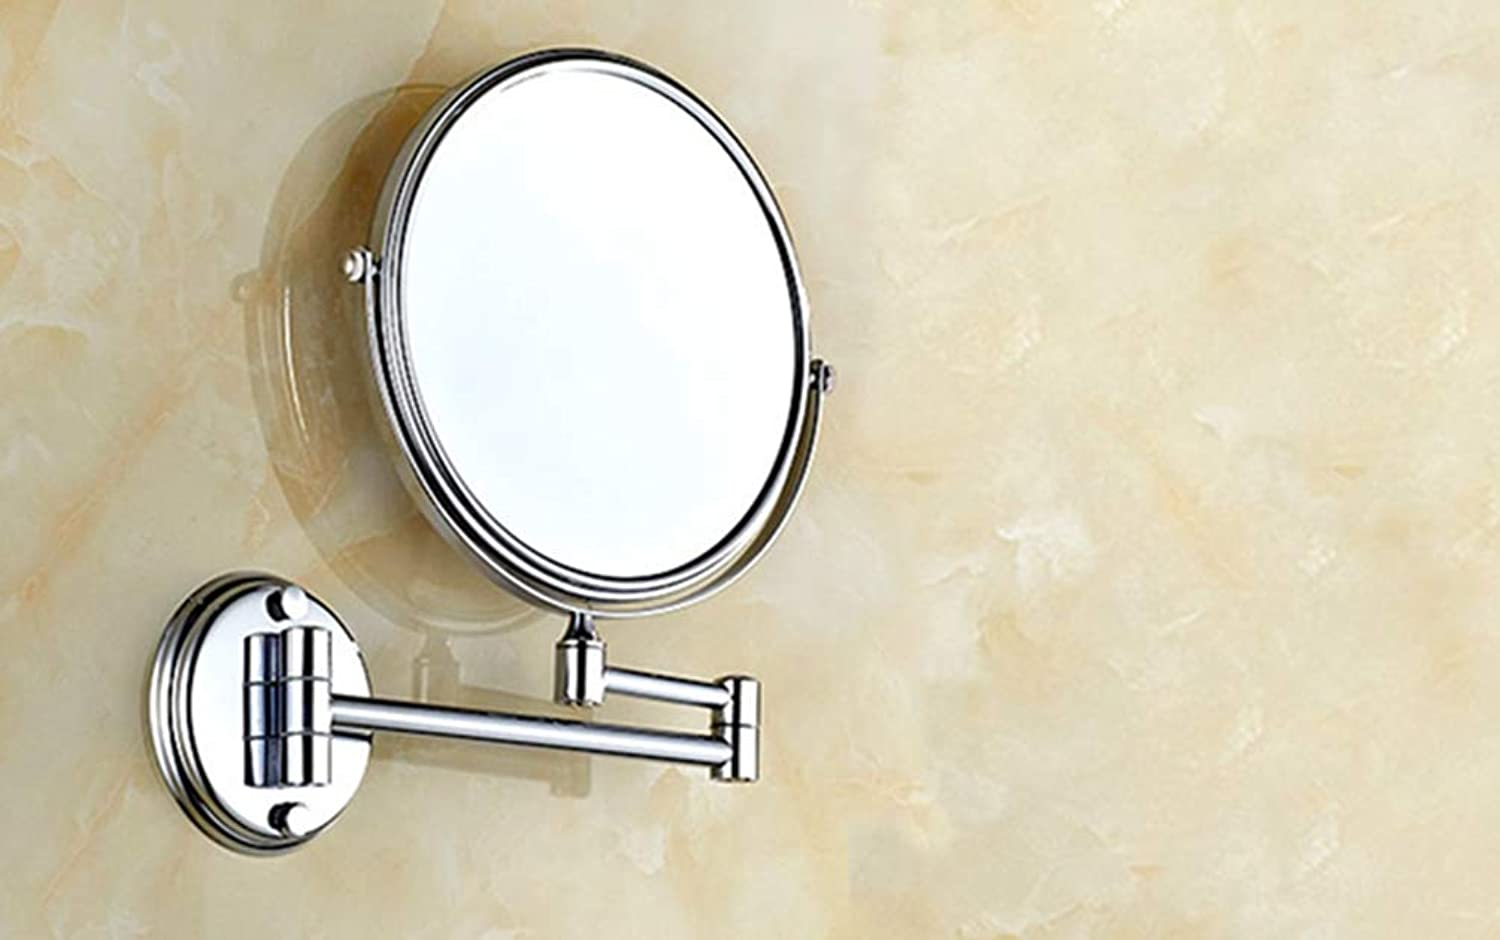 LUDSUY Bathroom Accessories Polished Chrome Brass 8 Bathroom Shaving Beauty Makeup Magnify Mirror Dual Side Wall Mounted ∕ Bathroom Accessory